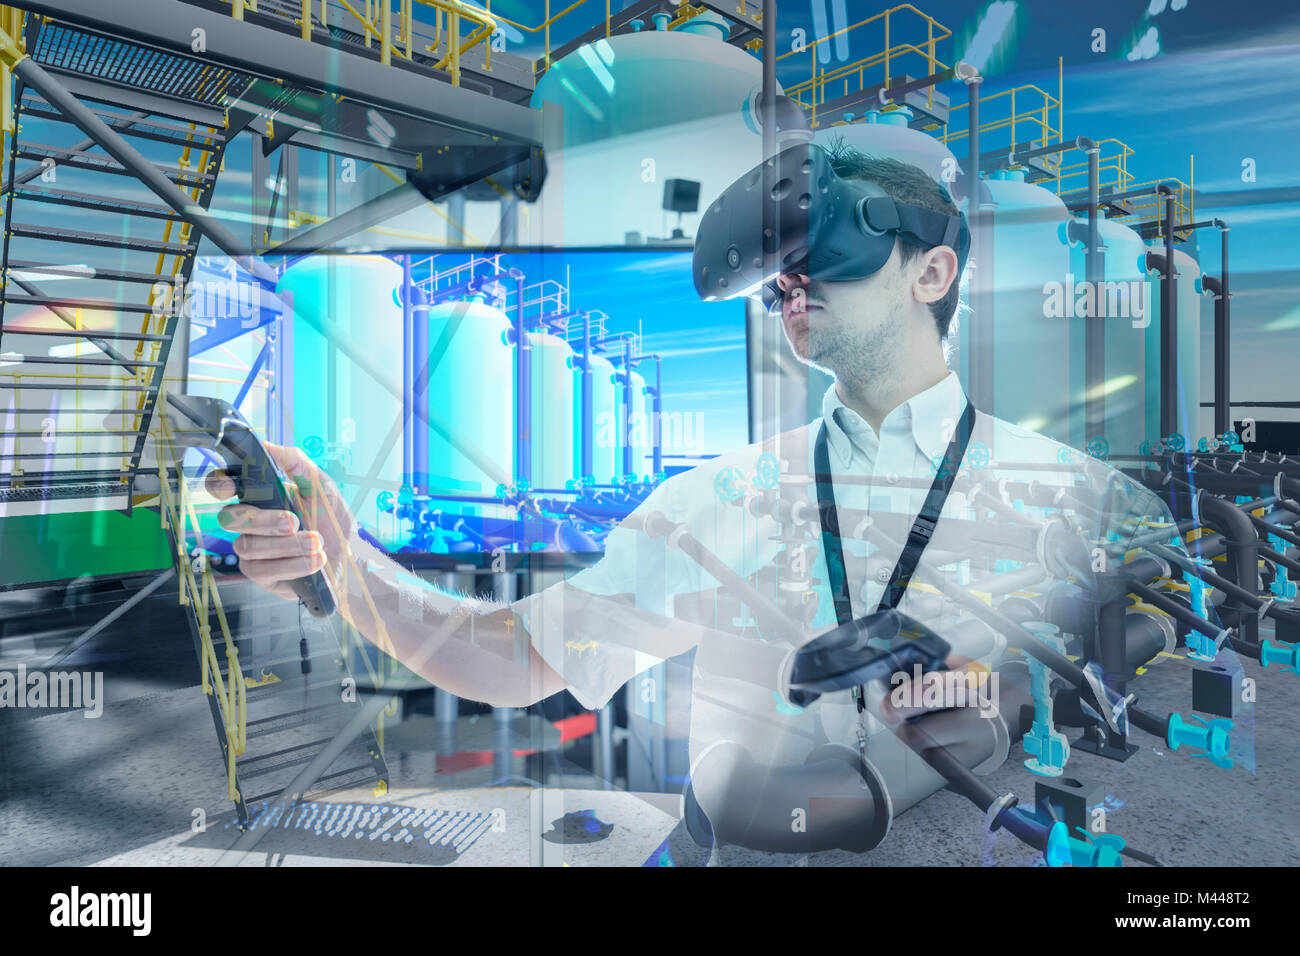 Engineer using virtual reality headset to explore 3D environment in robotics research facility - Stock Image